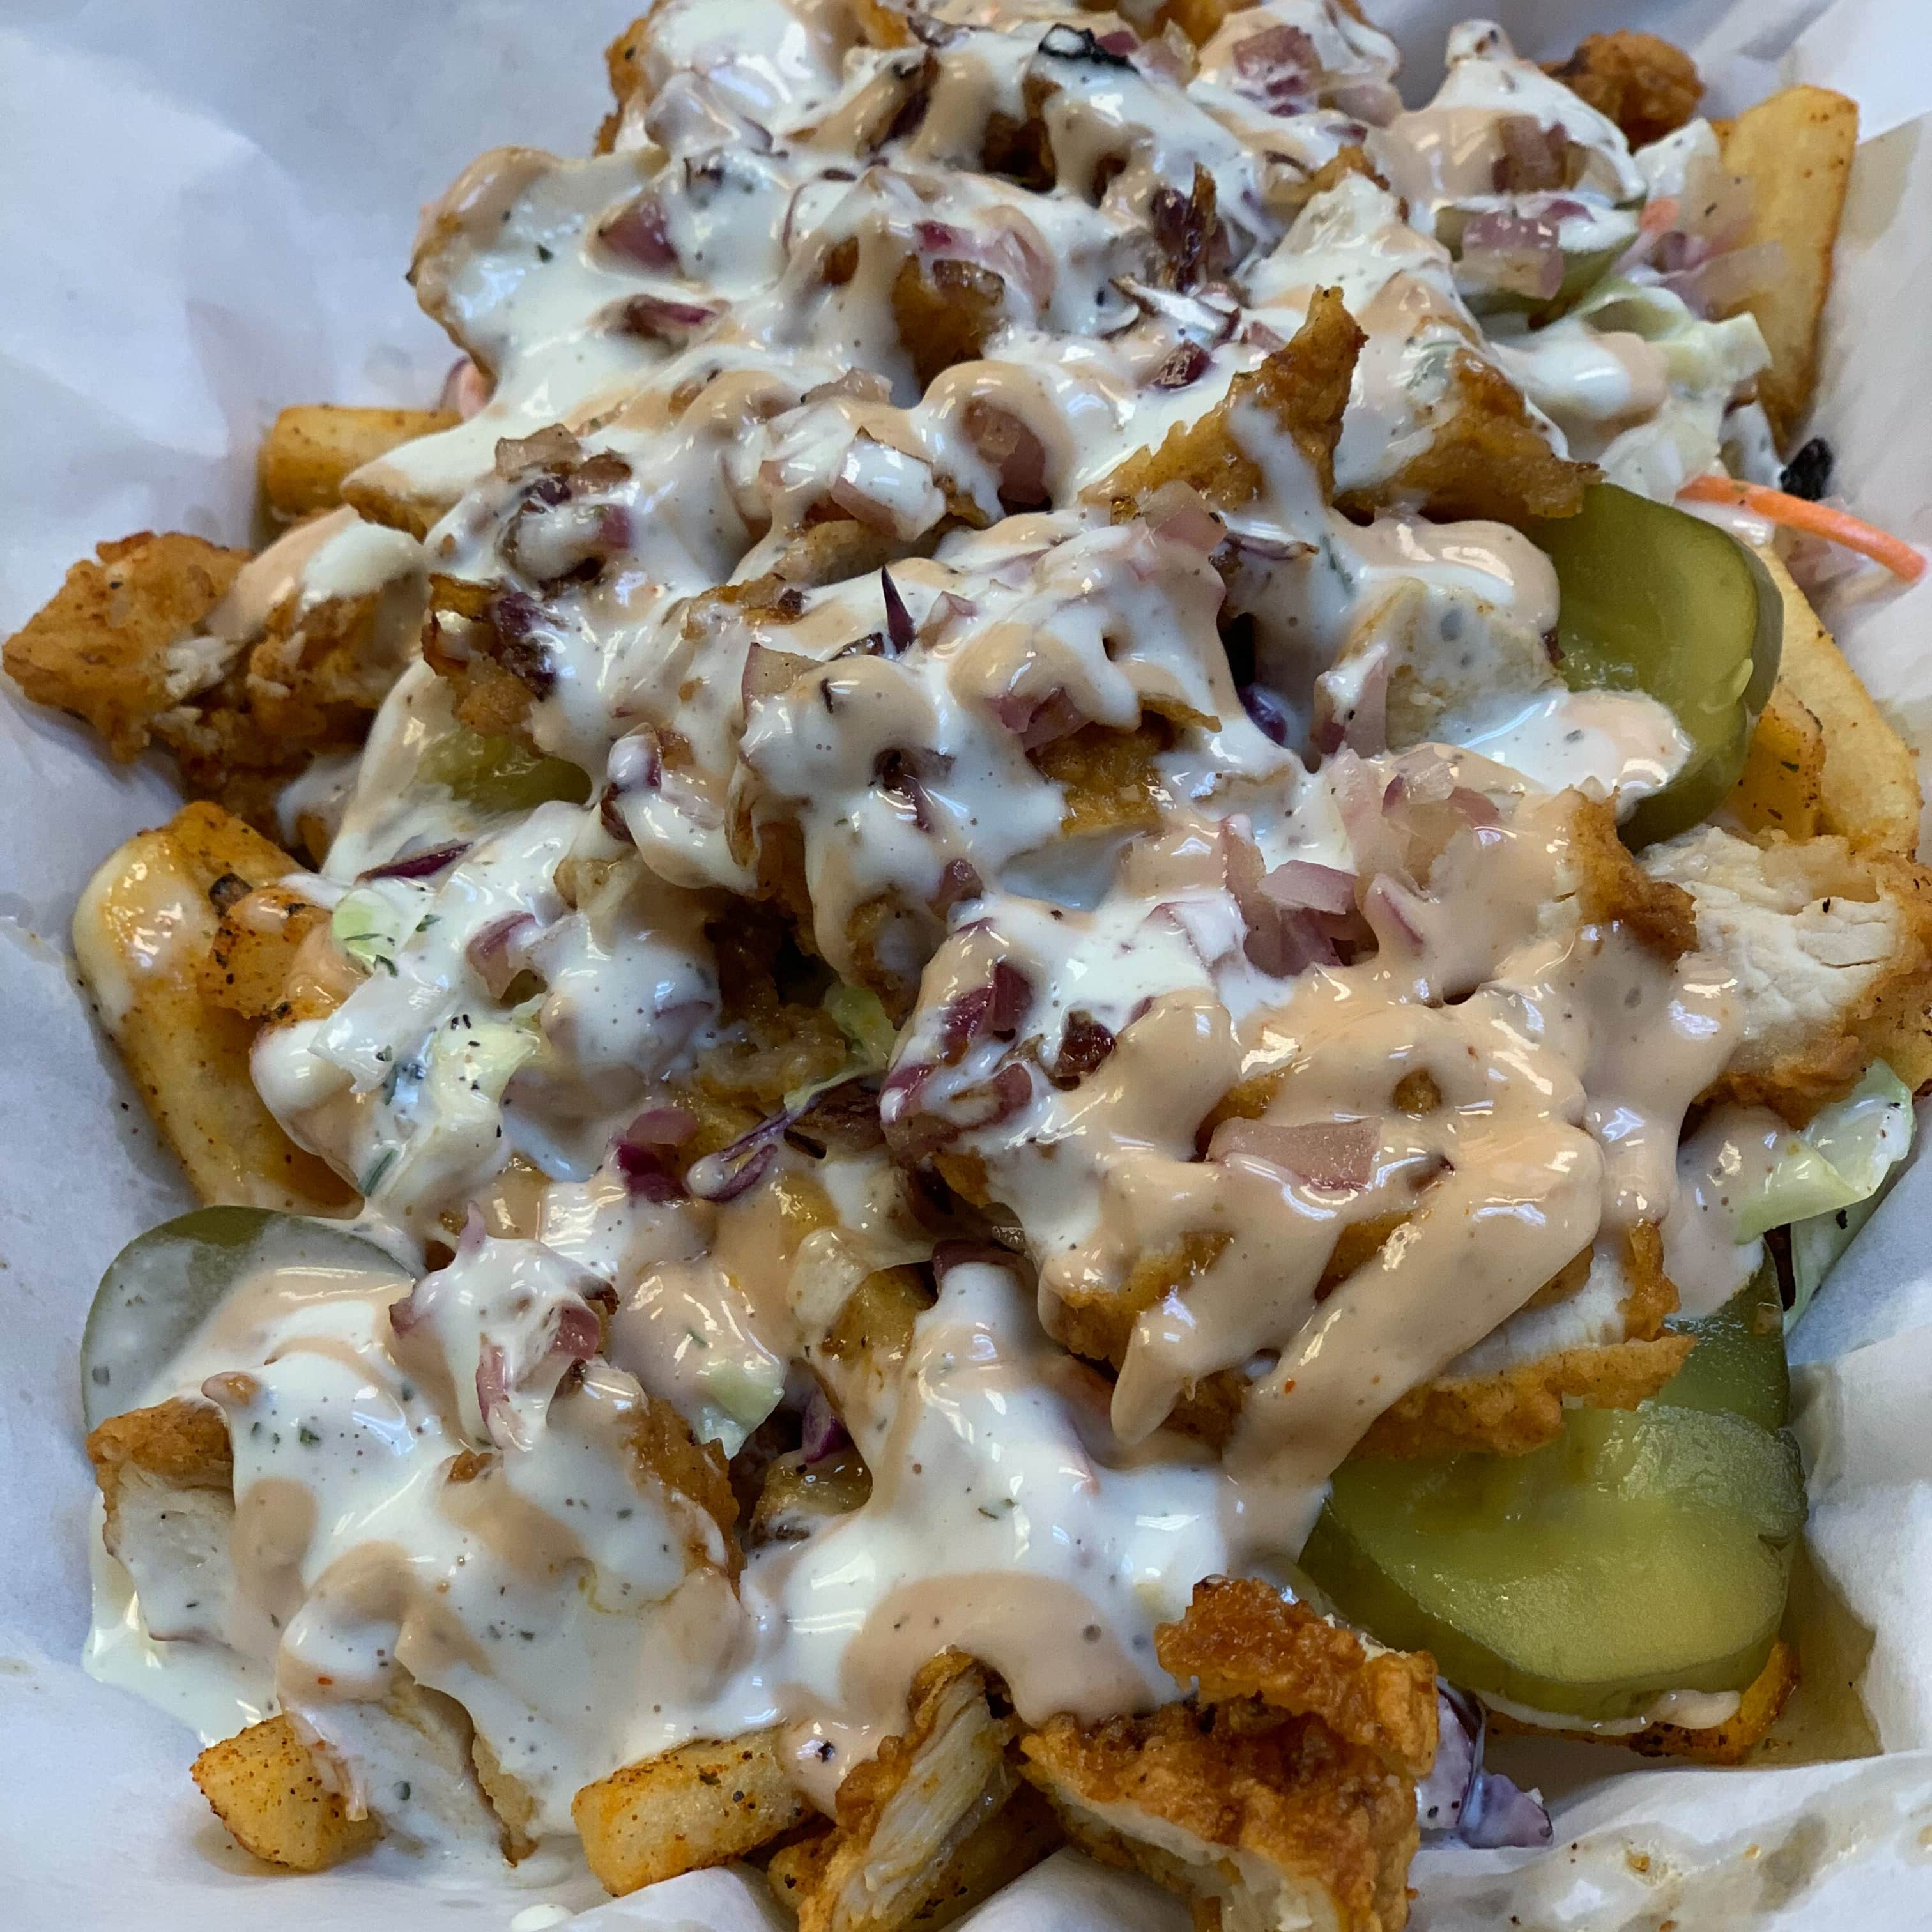 Bun Bun Fries loaded with grilled onion, fried chicken, coleslaw and pickless,